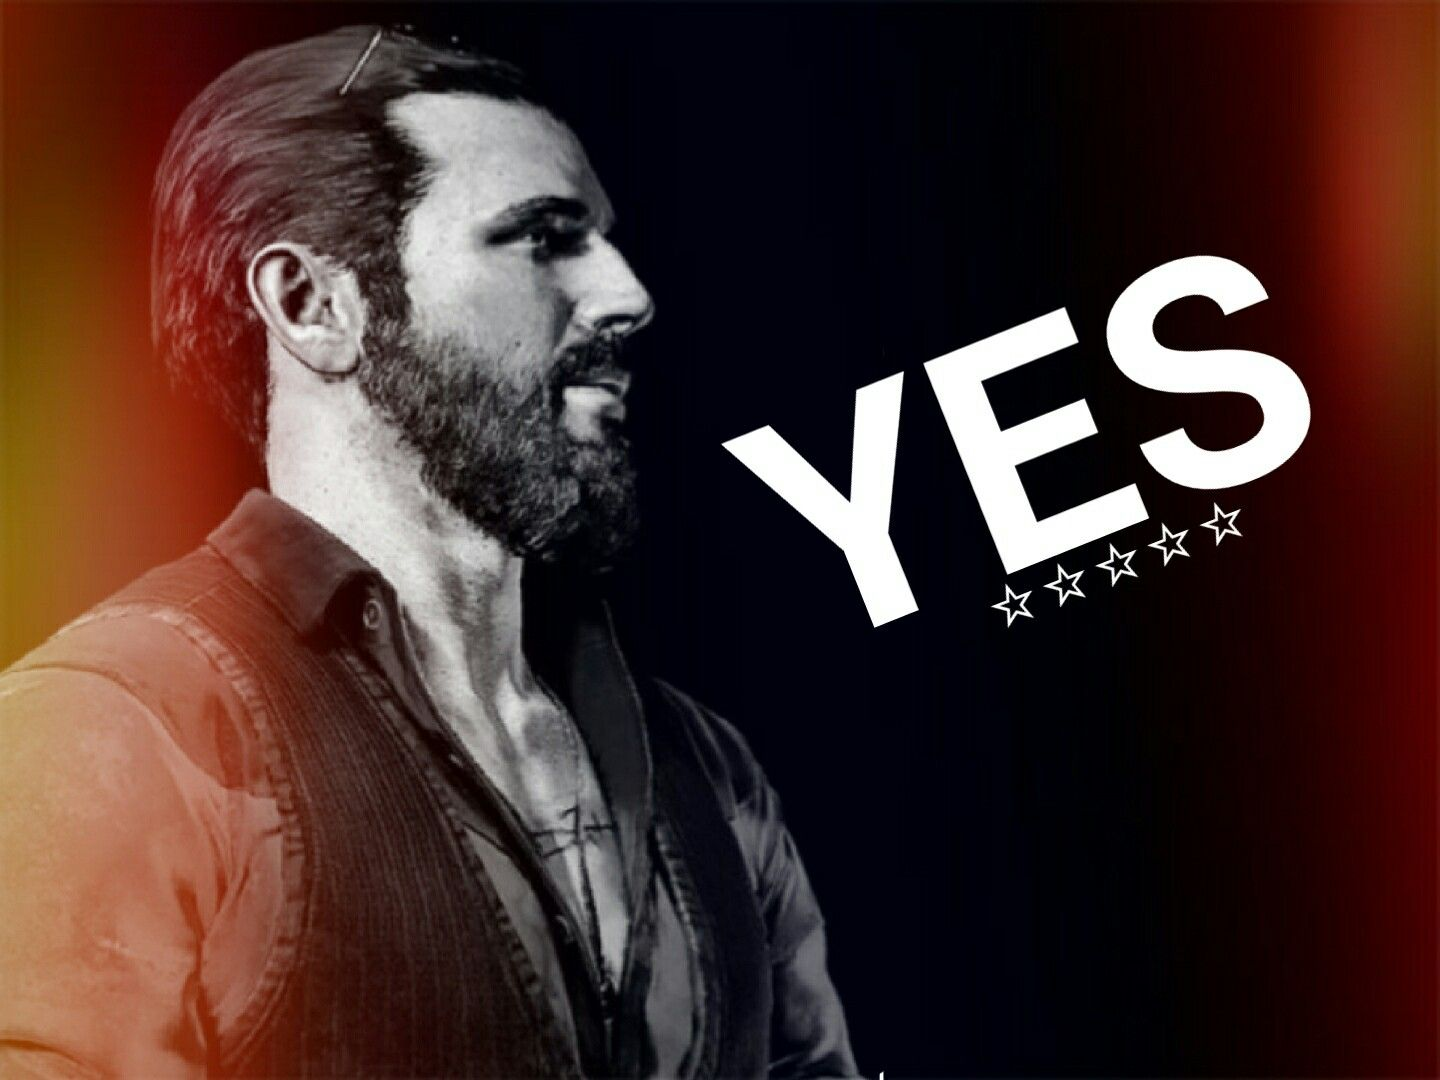 John Seed The Power Of Yes Fc5 Far Cry 5 The Last Of Us Crying